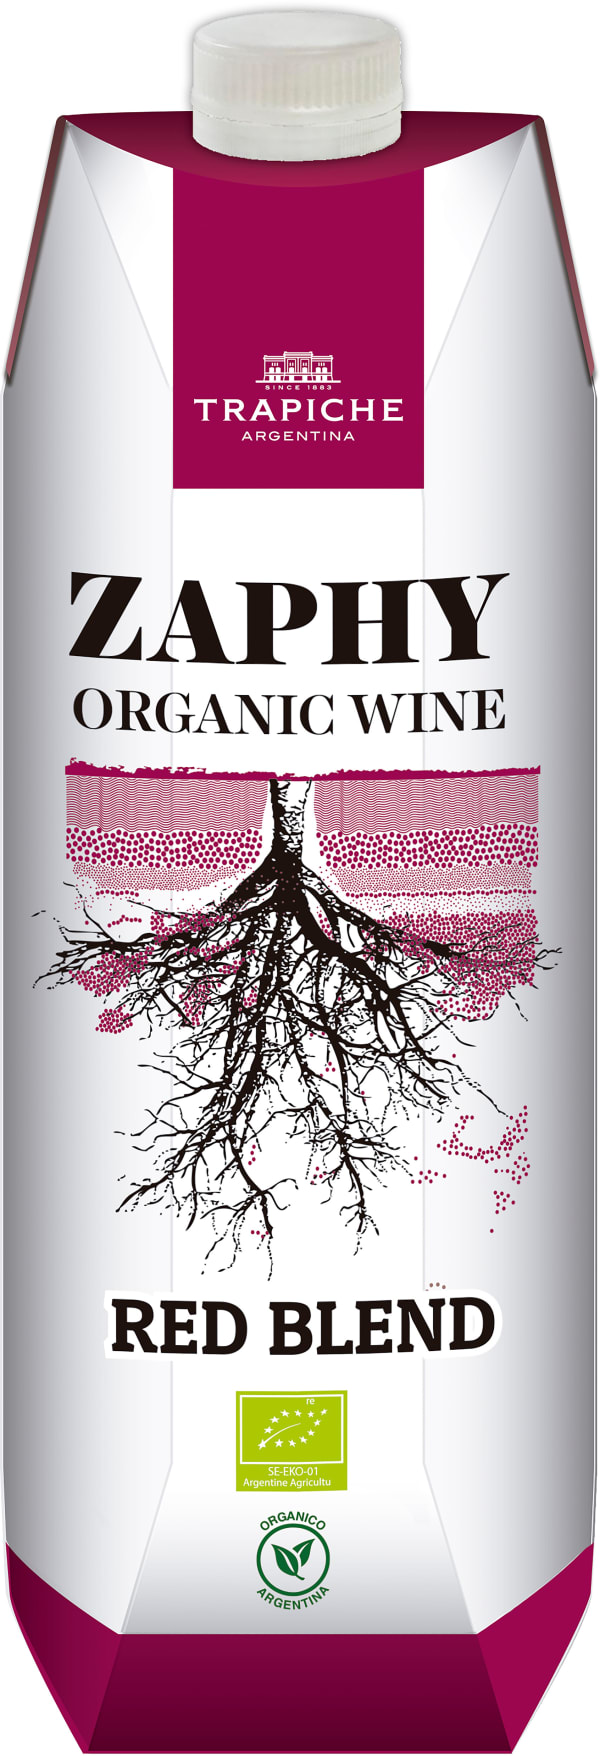 Trapiche Zaphy Organic red blend 2017 carton package